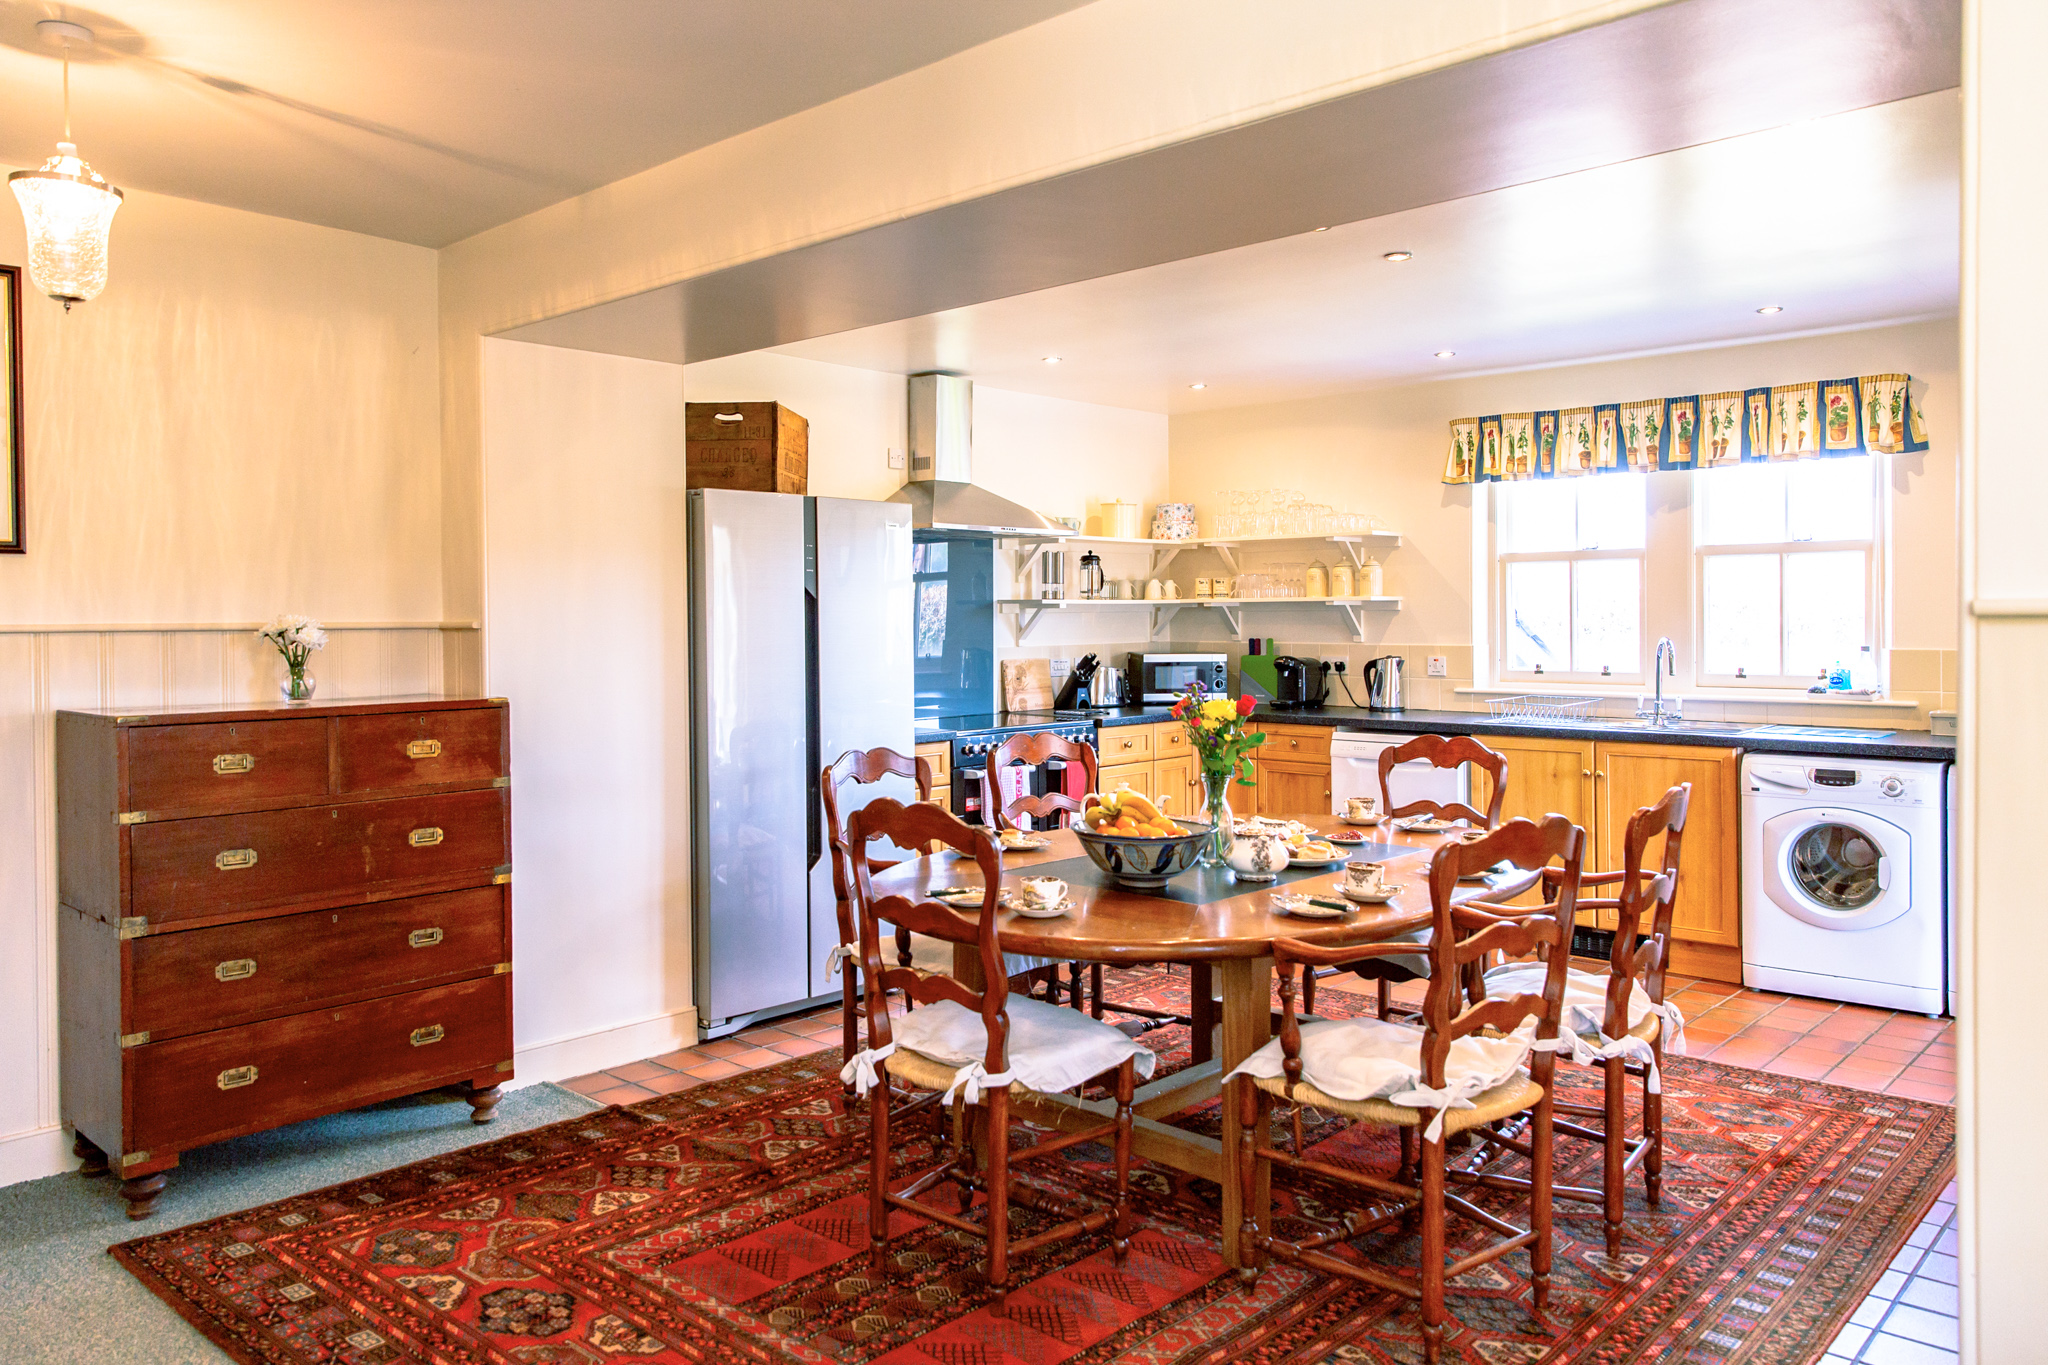 Large family dining room and kitchen.